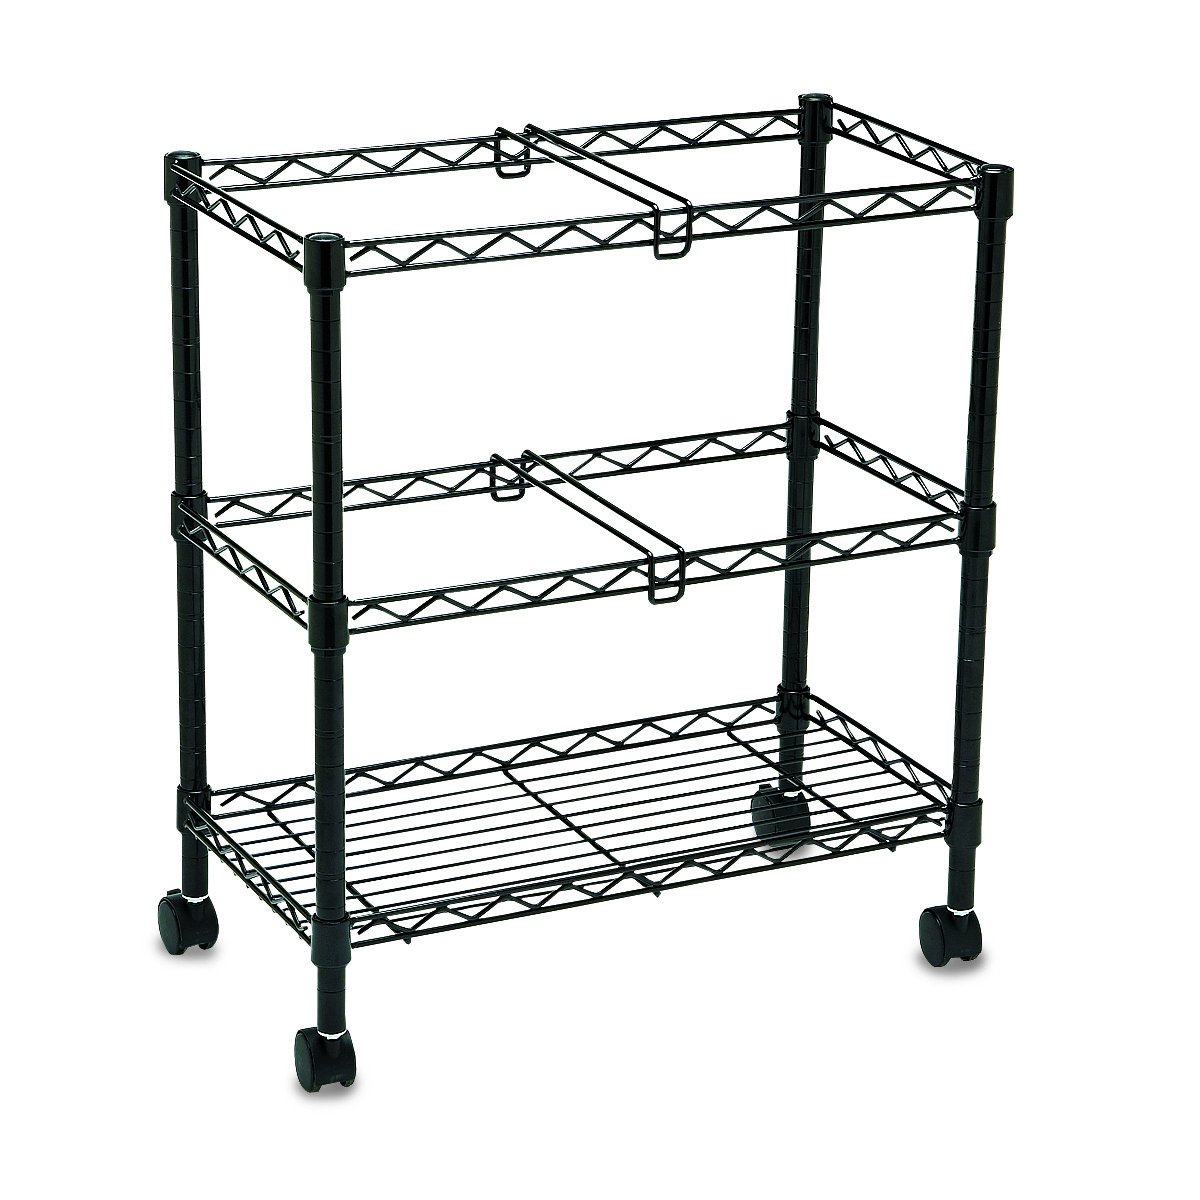 Safco Products 5278BL Two-Tier Rolling File Cart for Letter and Legal Size Folders (sold separately), Black